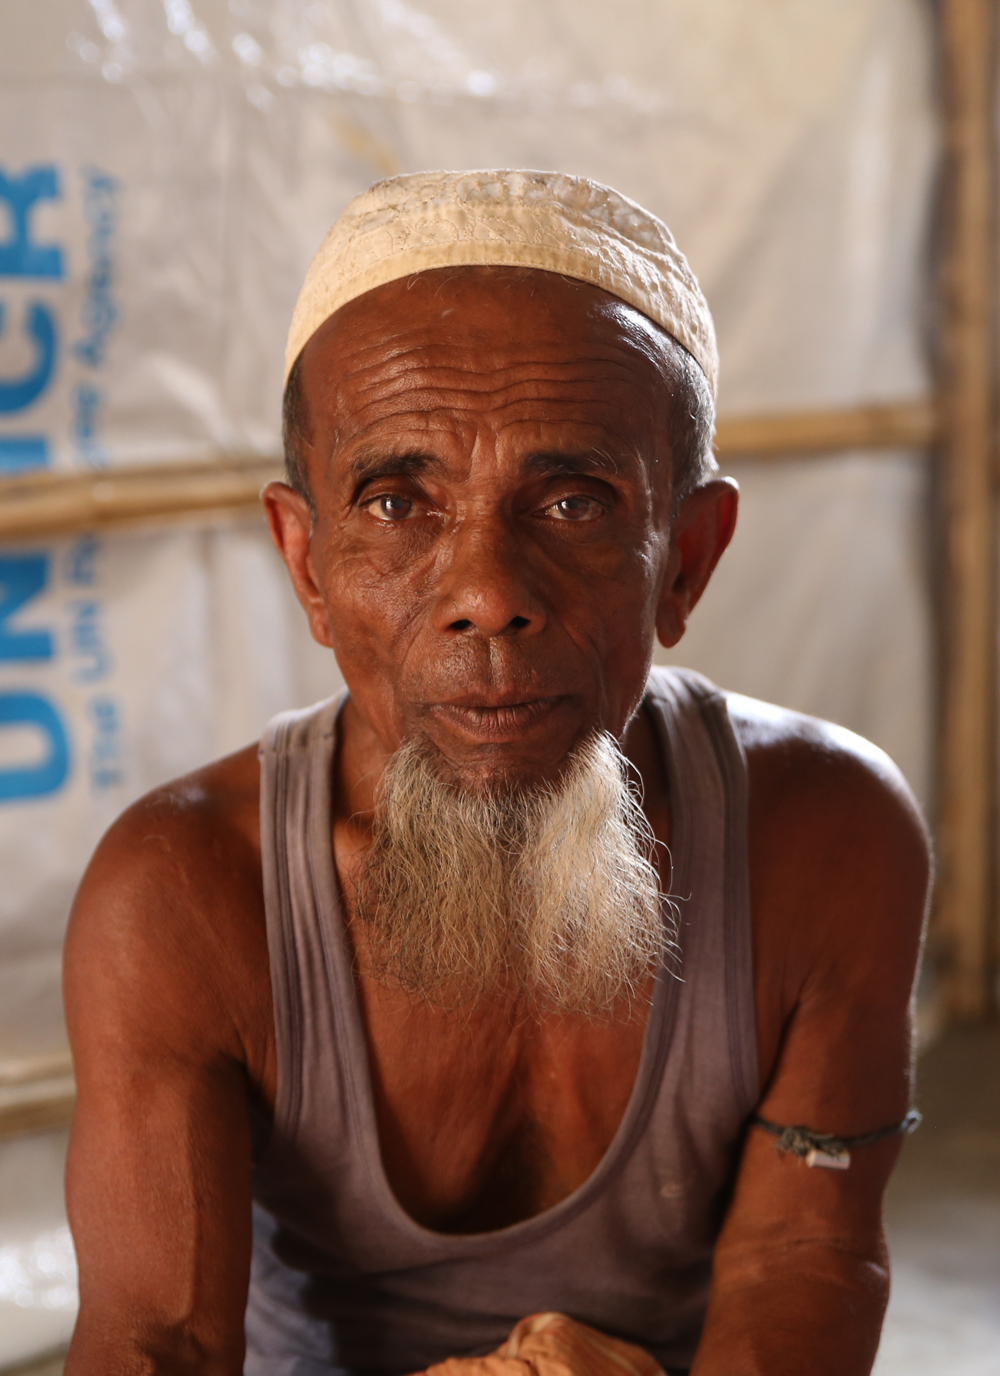 Hamid from Myanmar has received a new shelter from Caritas.